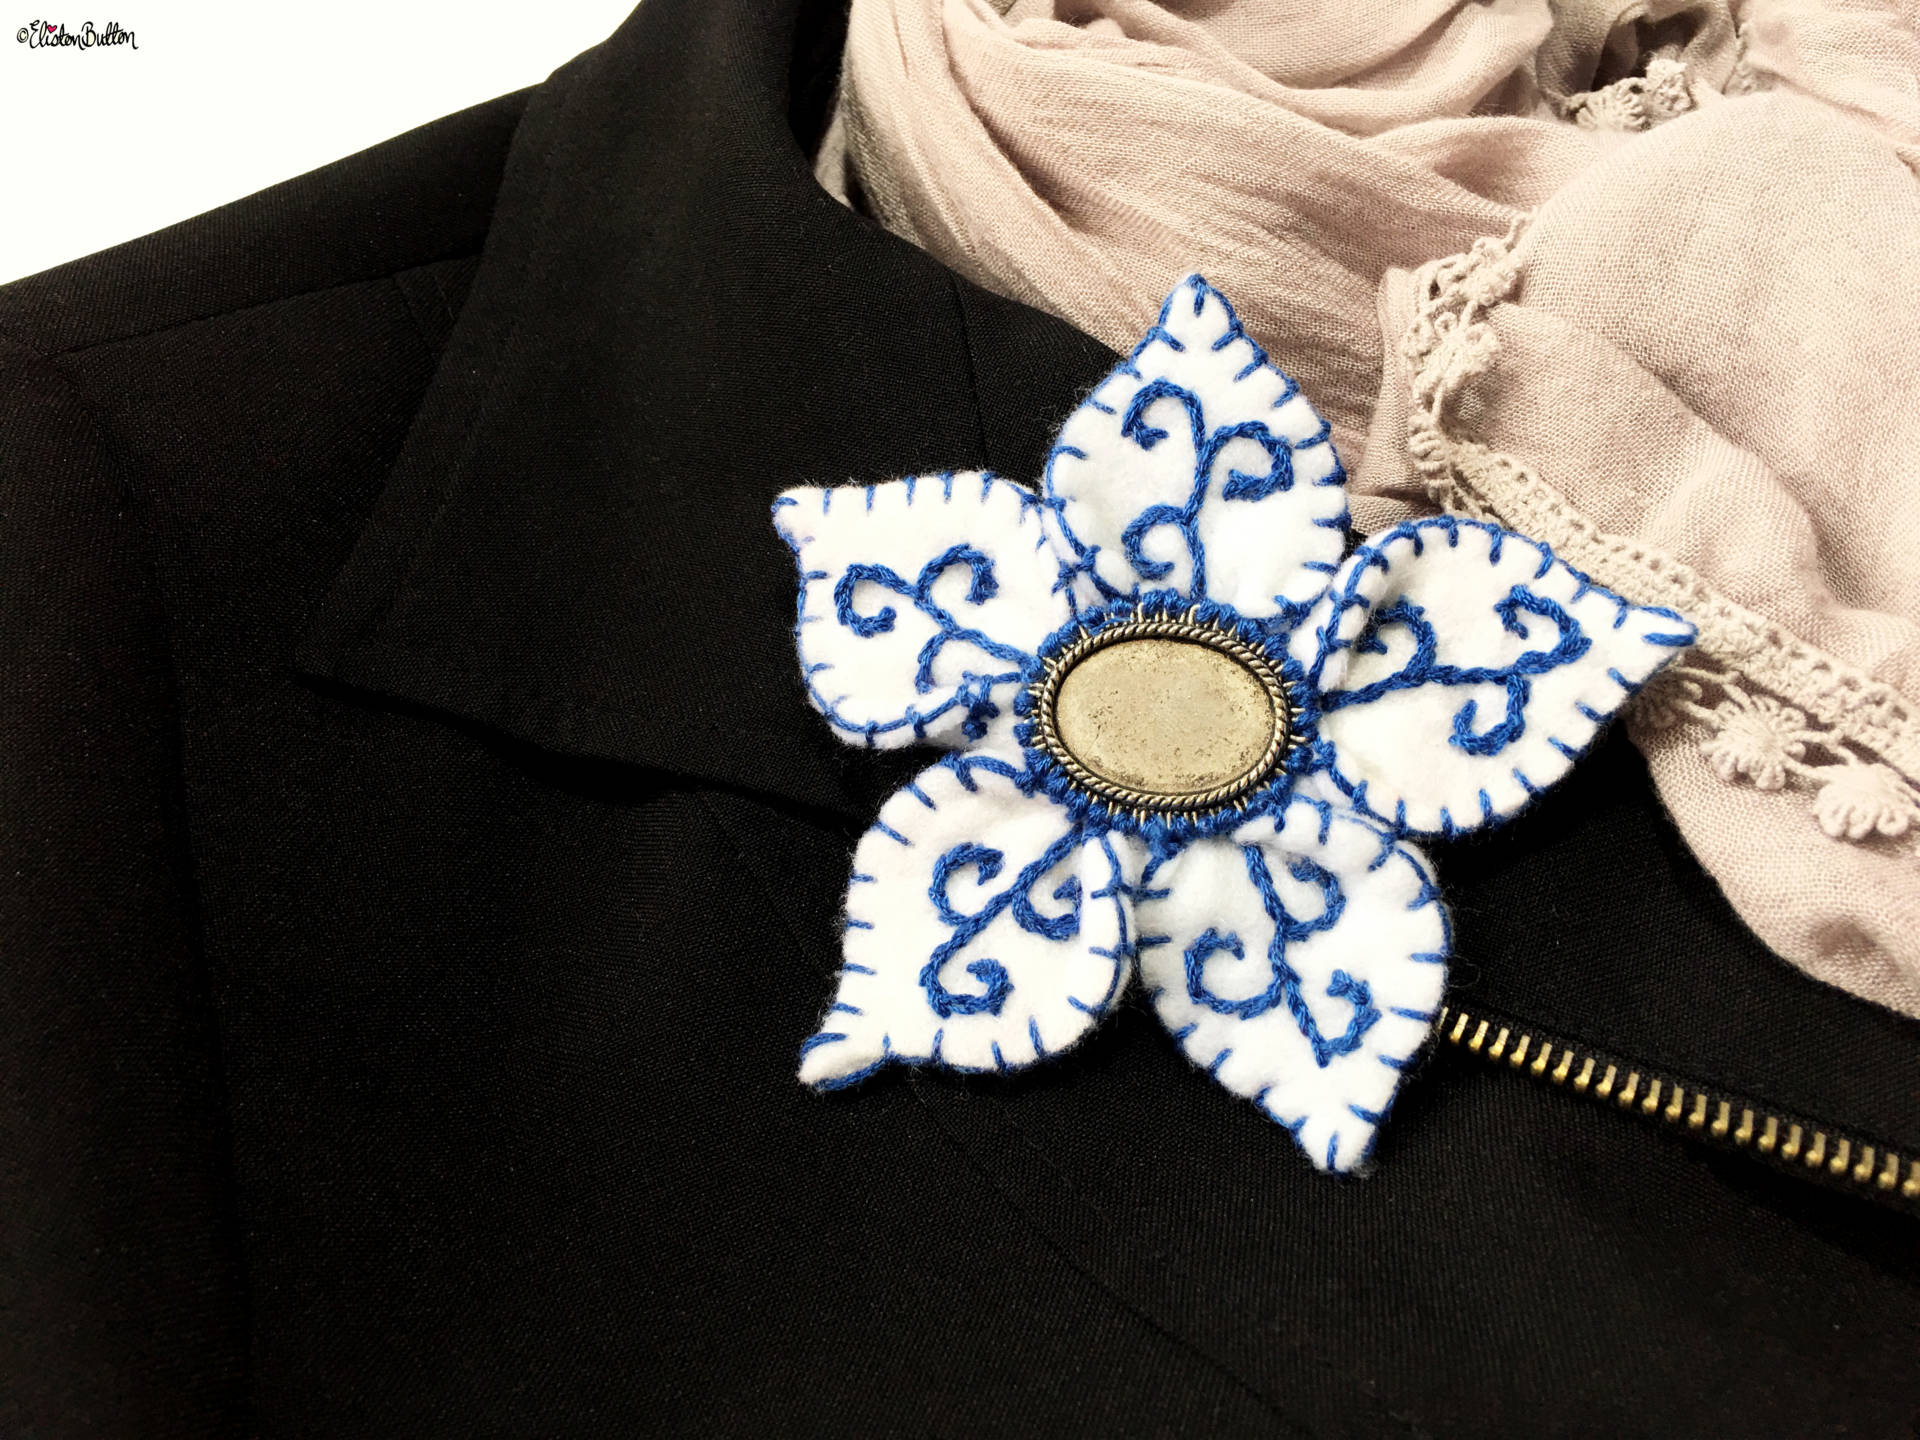 Blue and White Embroidered Felt Flower Brooch on Black Jacket Lapel with a Grey Scarf by Eliston Button - Blue and White Embroidered Felt Flower Brooch on a Black Jacket Lapel with a Grey Scarf by Eliston Button - Create 30 - No. 14 - Blue and White Embroidered Felt Flower Brooch at www.elistonbutton.com - Eliston Button - That Crafty Kid – Art, Design, Craft & Adventure.